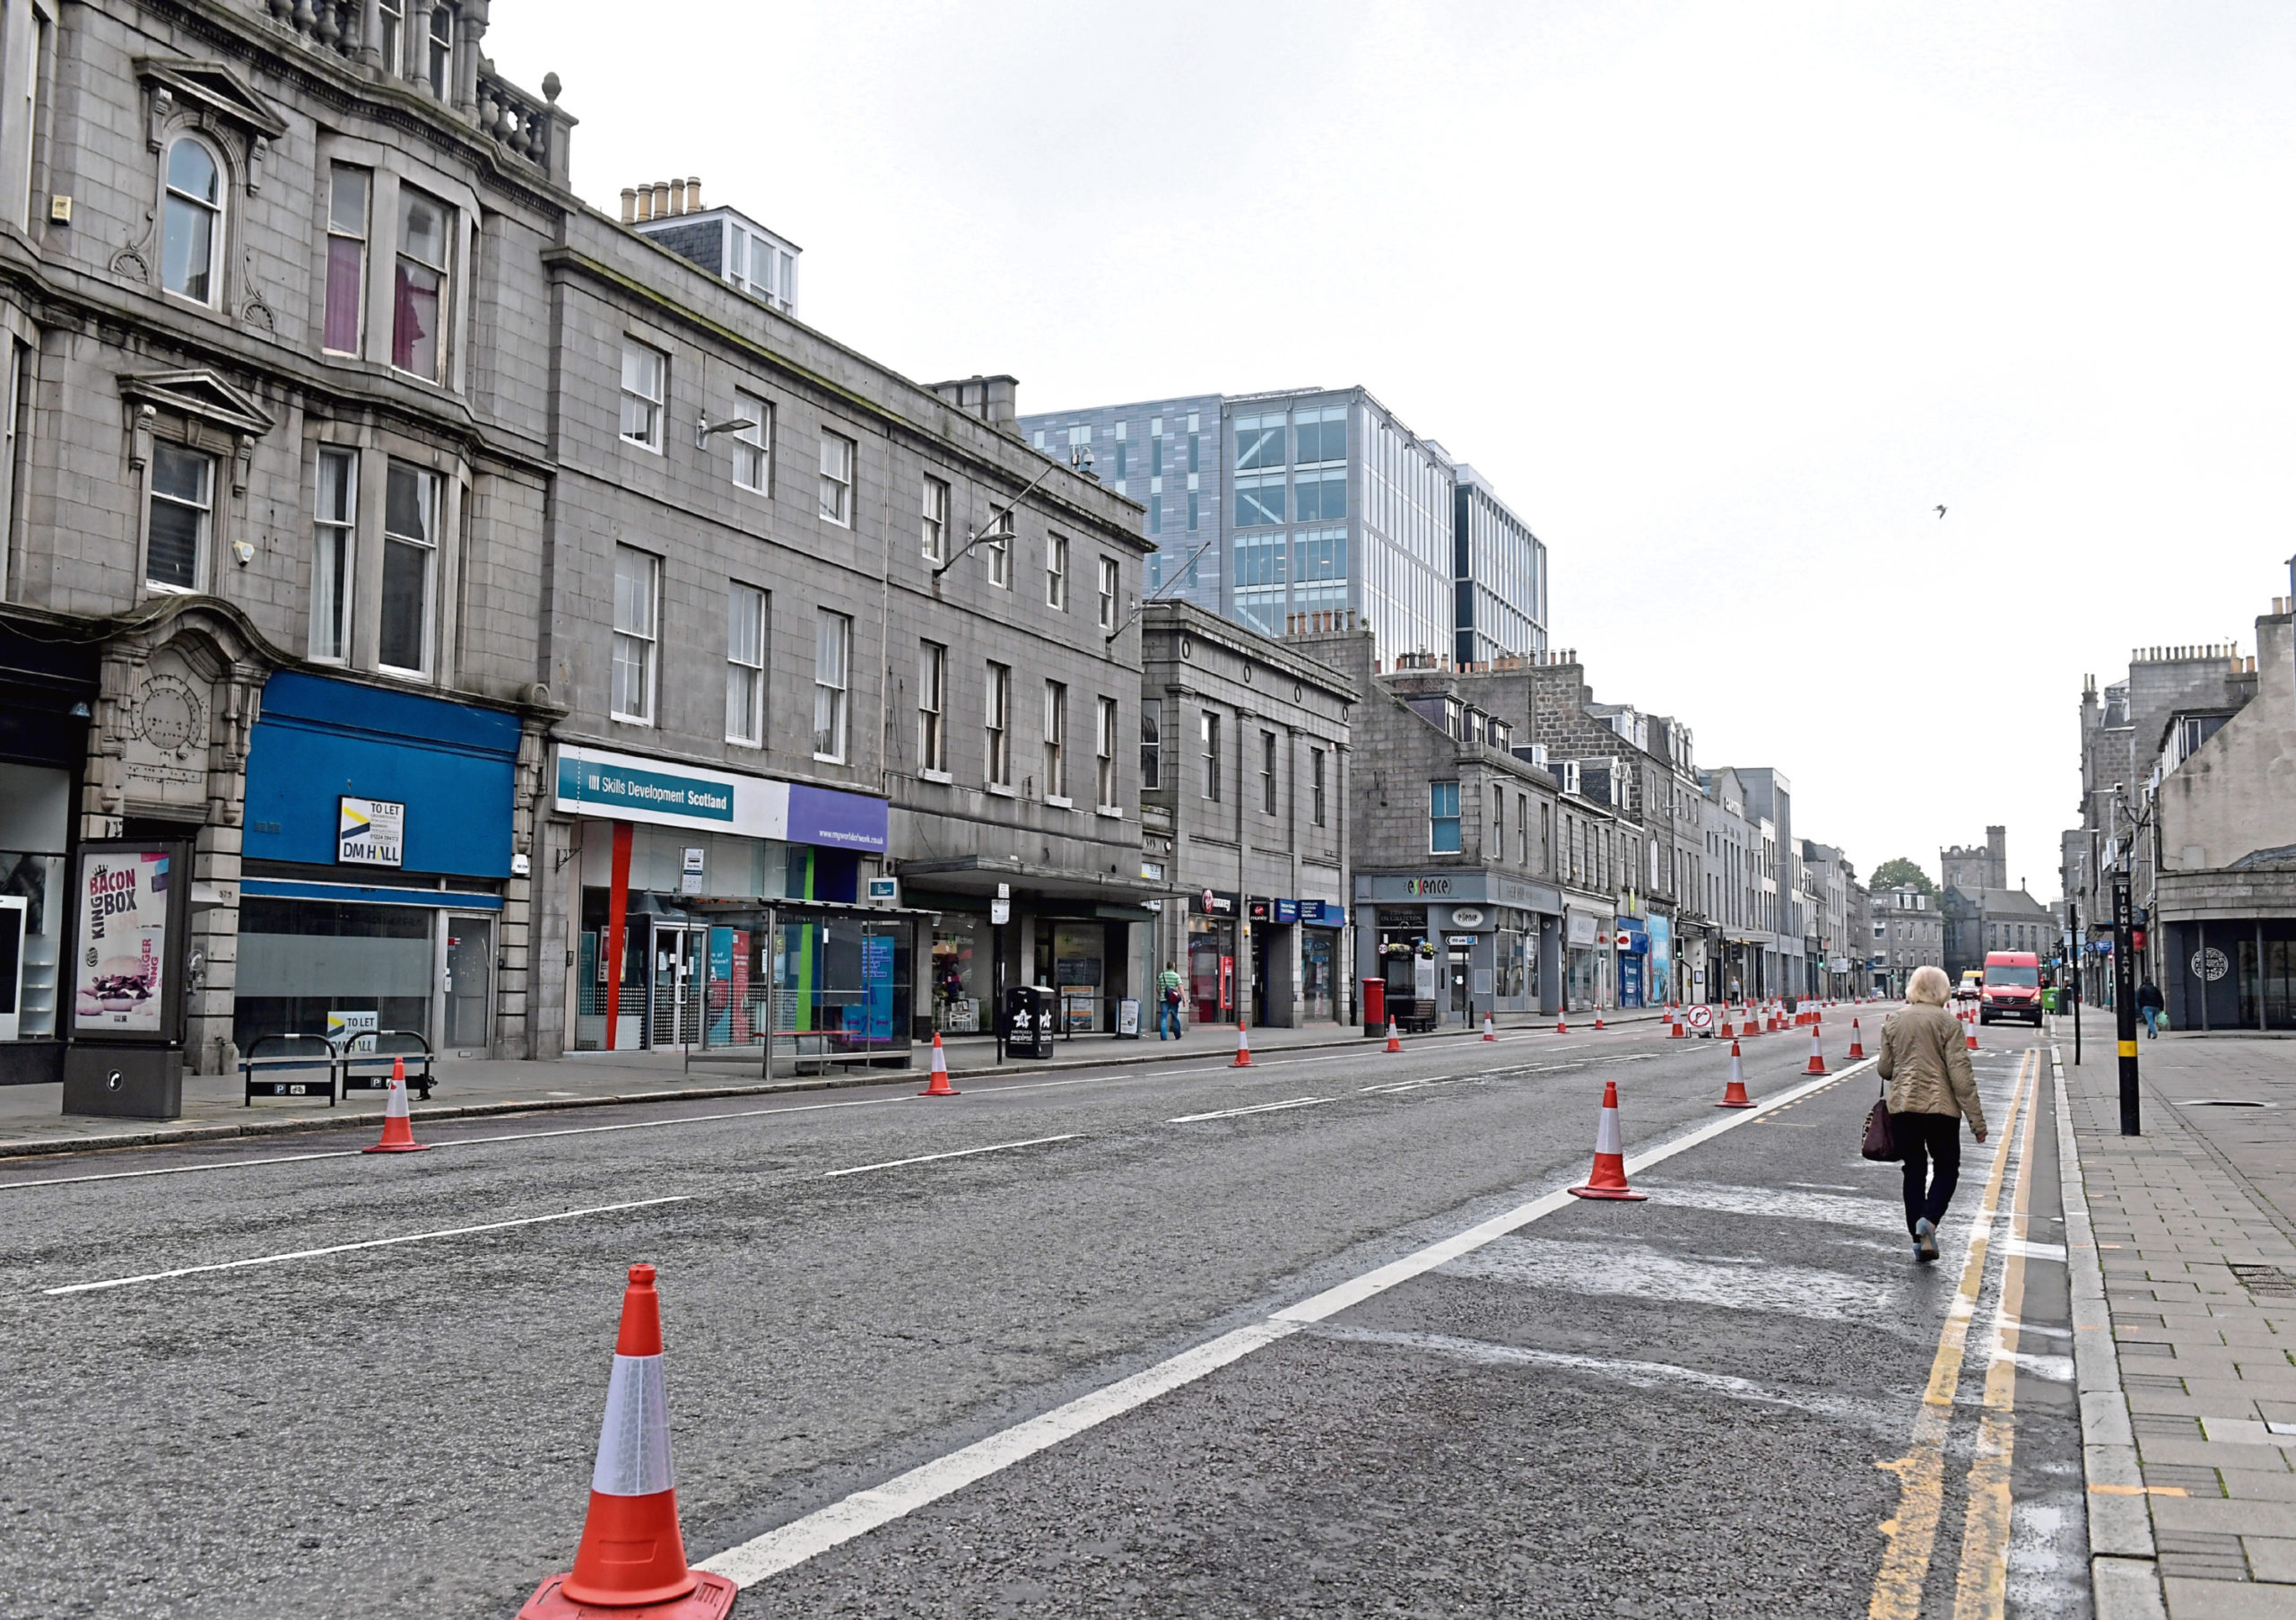 Businesses have applied for outdoor seating permits on Union Street